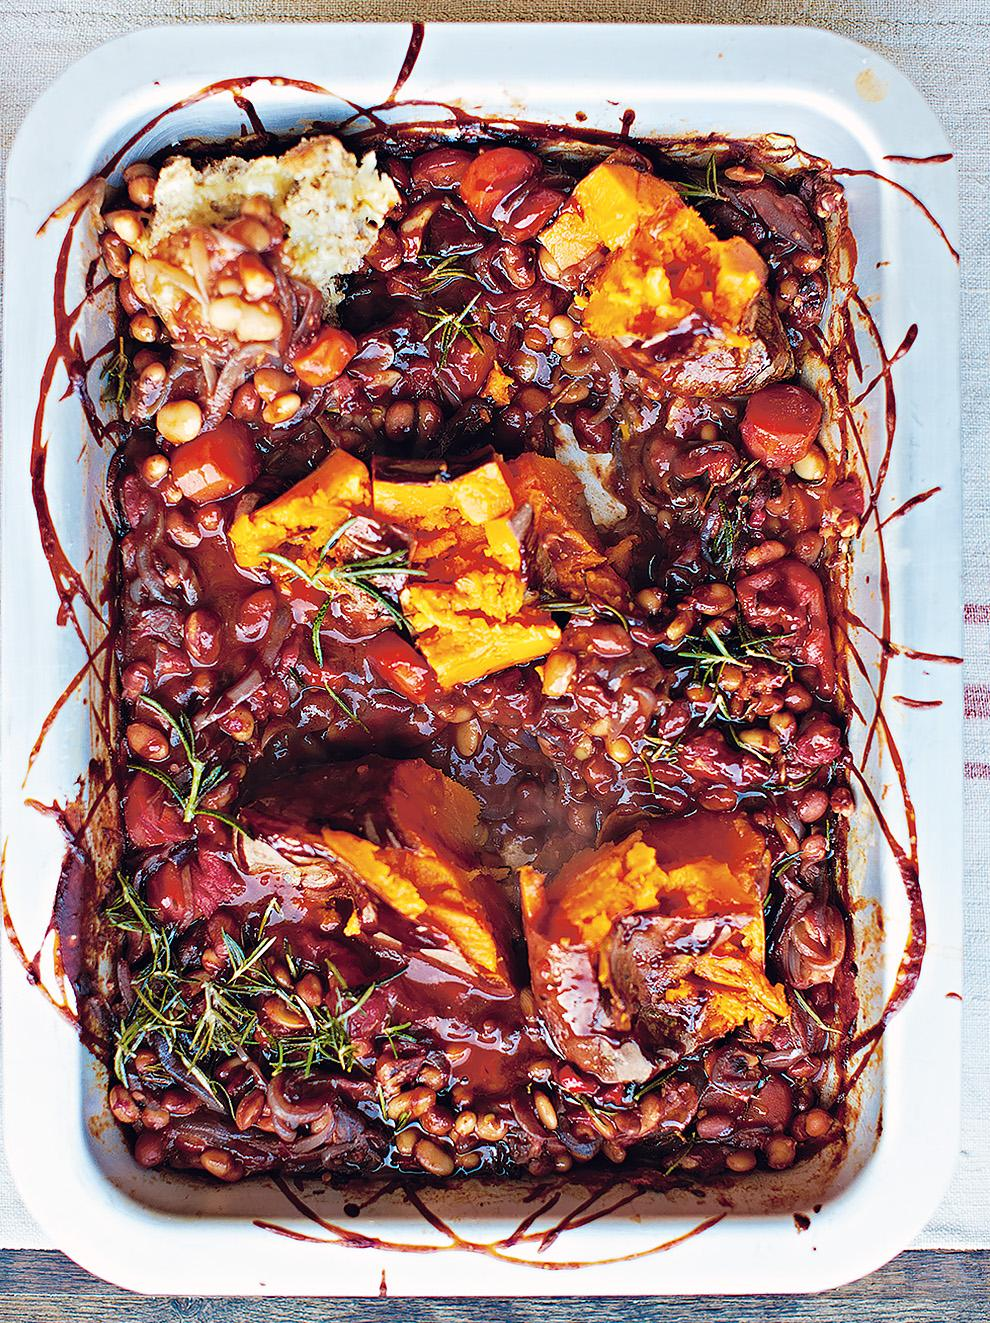 Jamie Oliver 15 Minuten Küche Rezepte Pdf 13 Veggie Recipes To Make Meat Eaters Envious Galleries Jamie